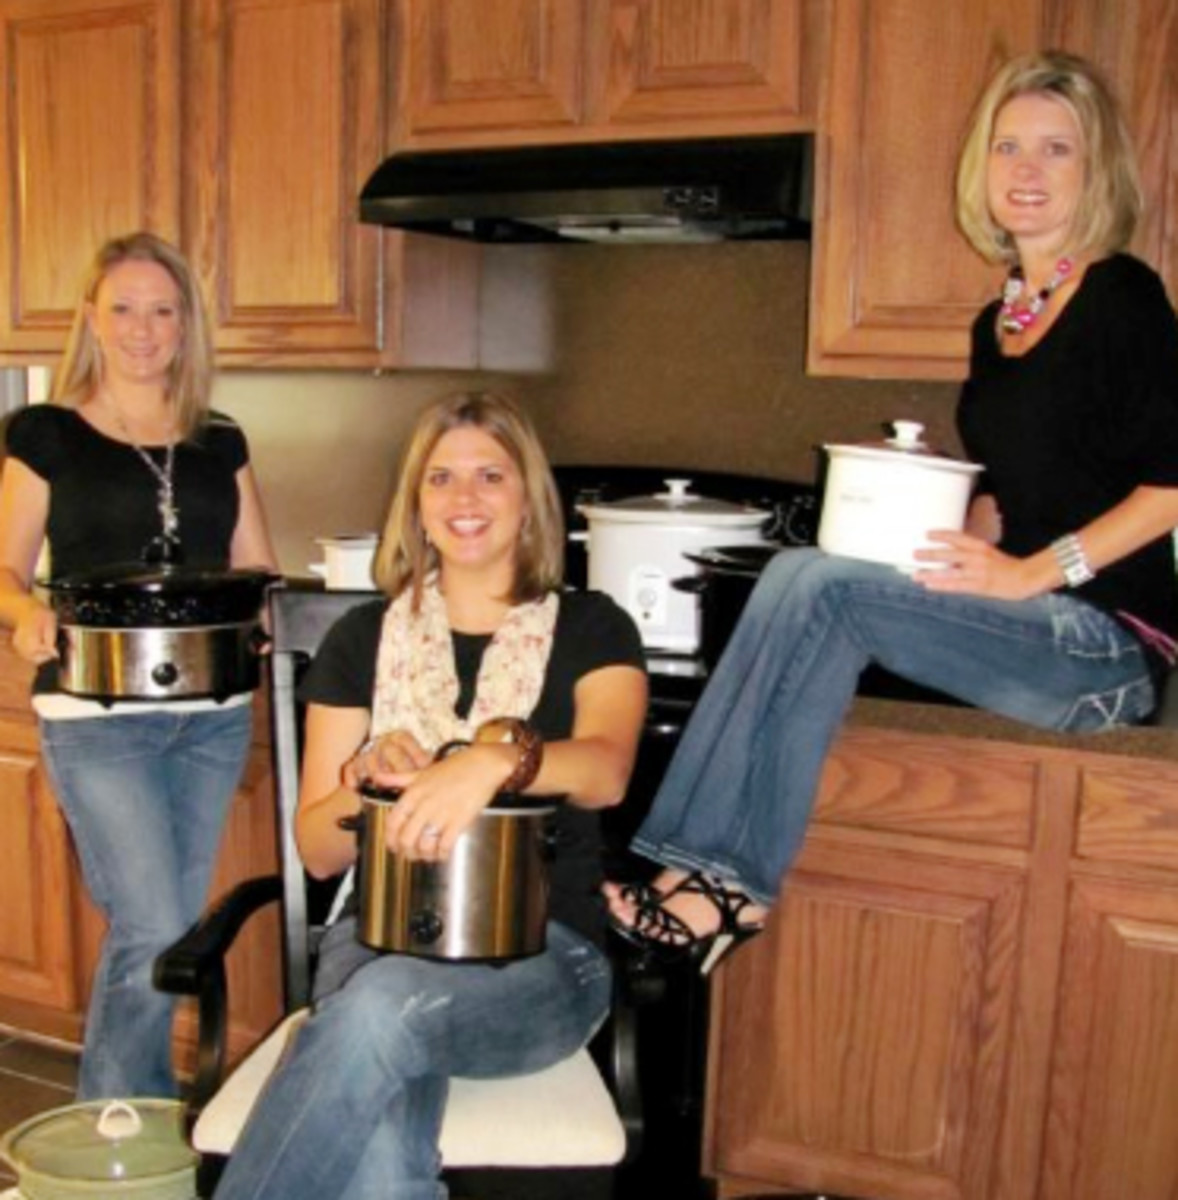 The Crock Pot Girls